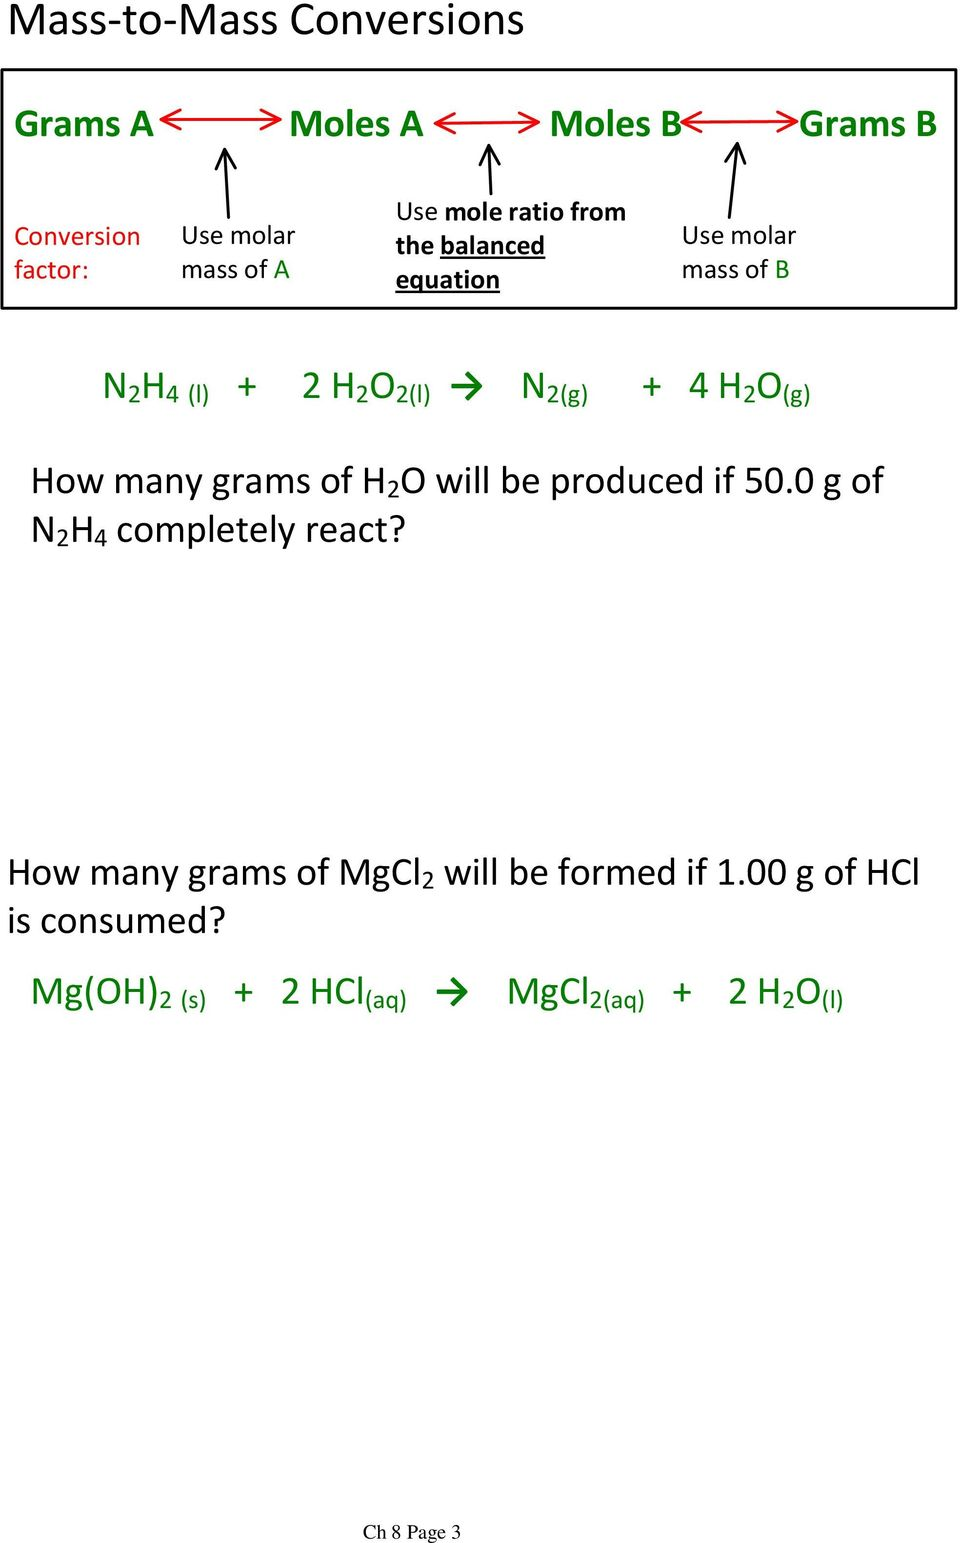 How many grams of H 2 O will be produced if 50.0 g of N 2 H 4 completely react?